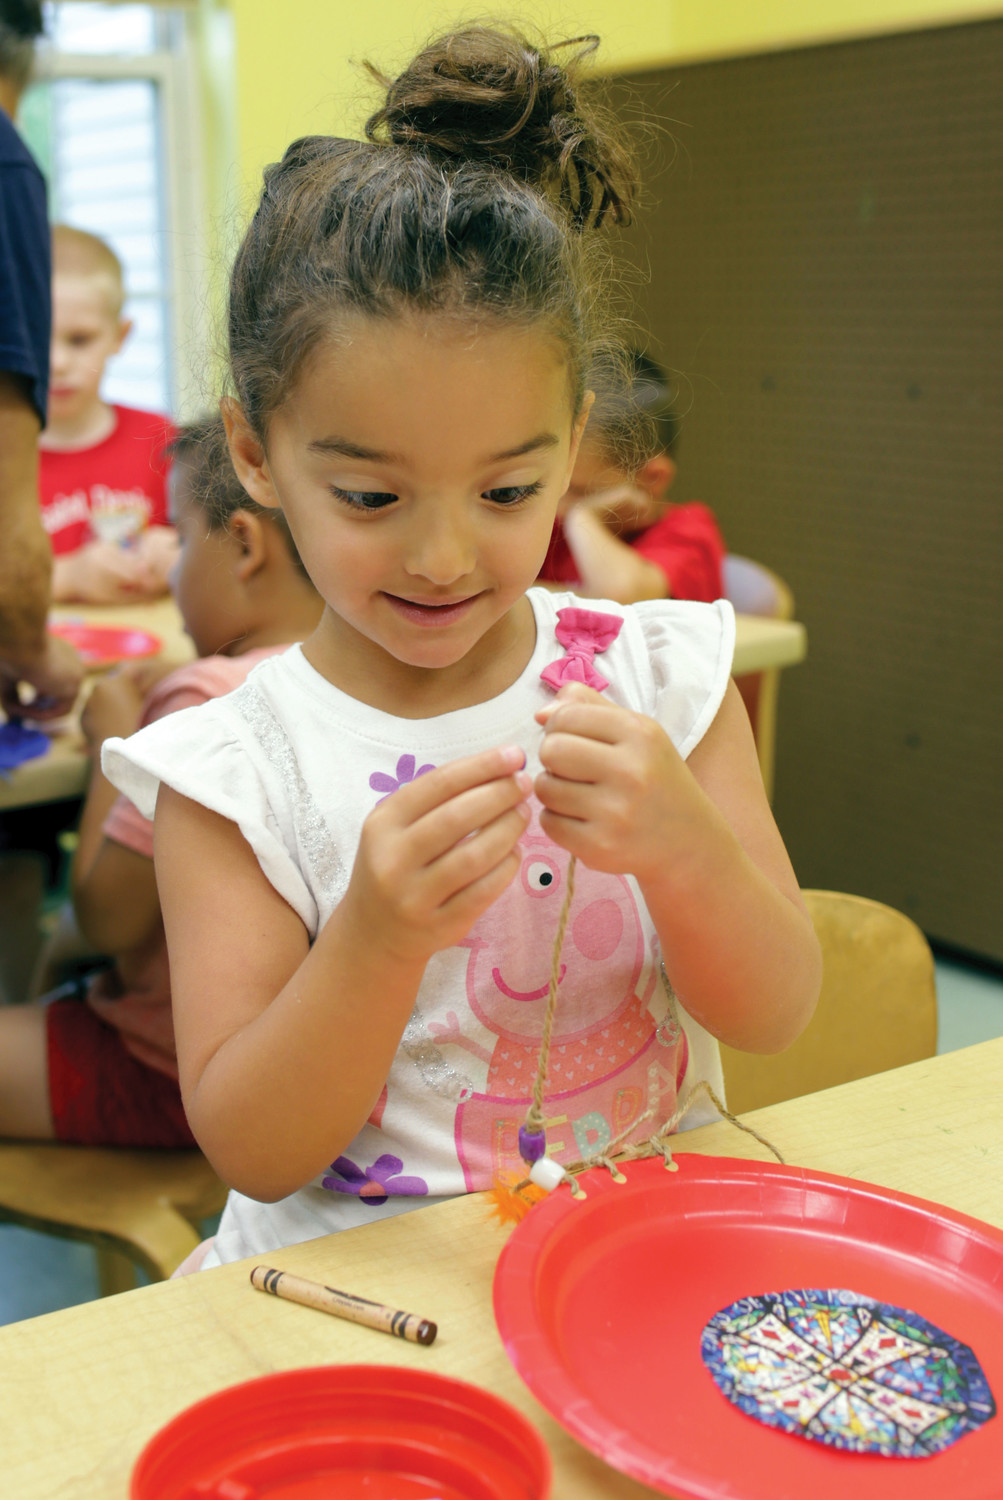 Chloe Colucci, who is entering kindergarten, takes part in a craft activity.